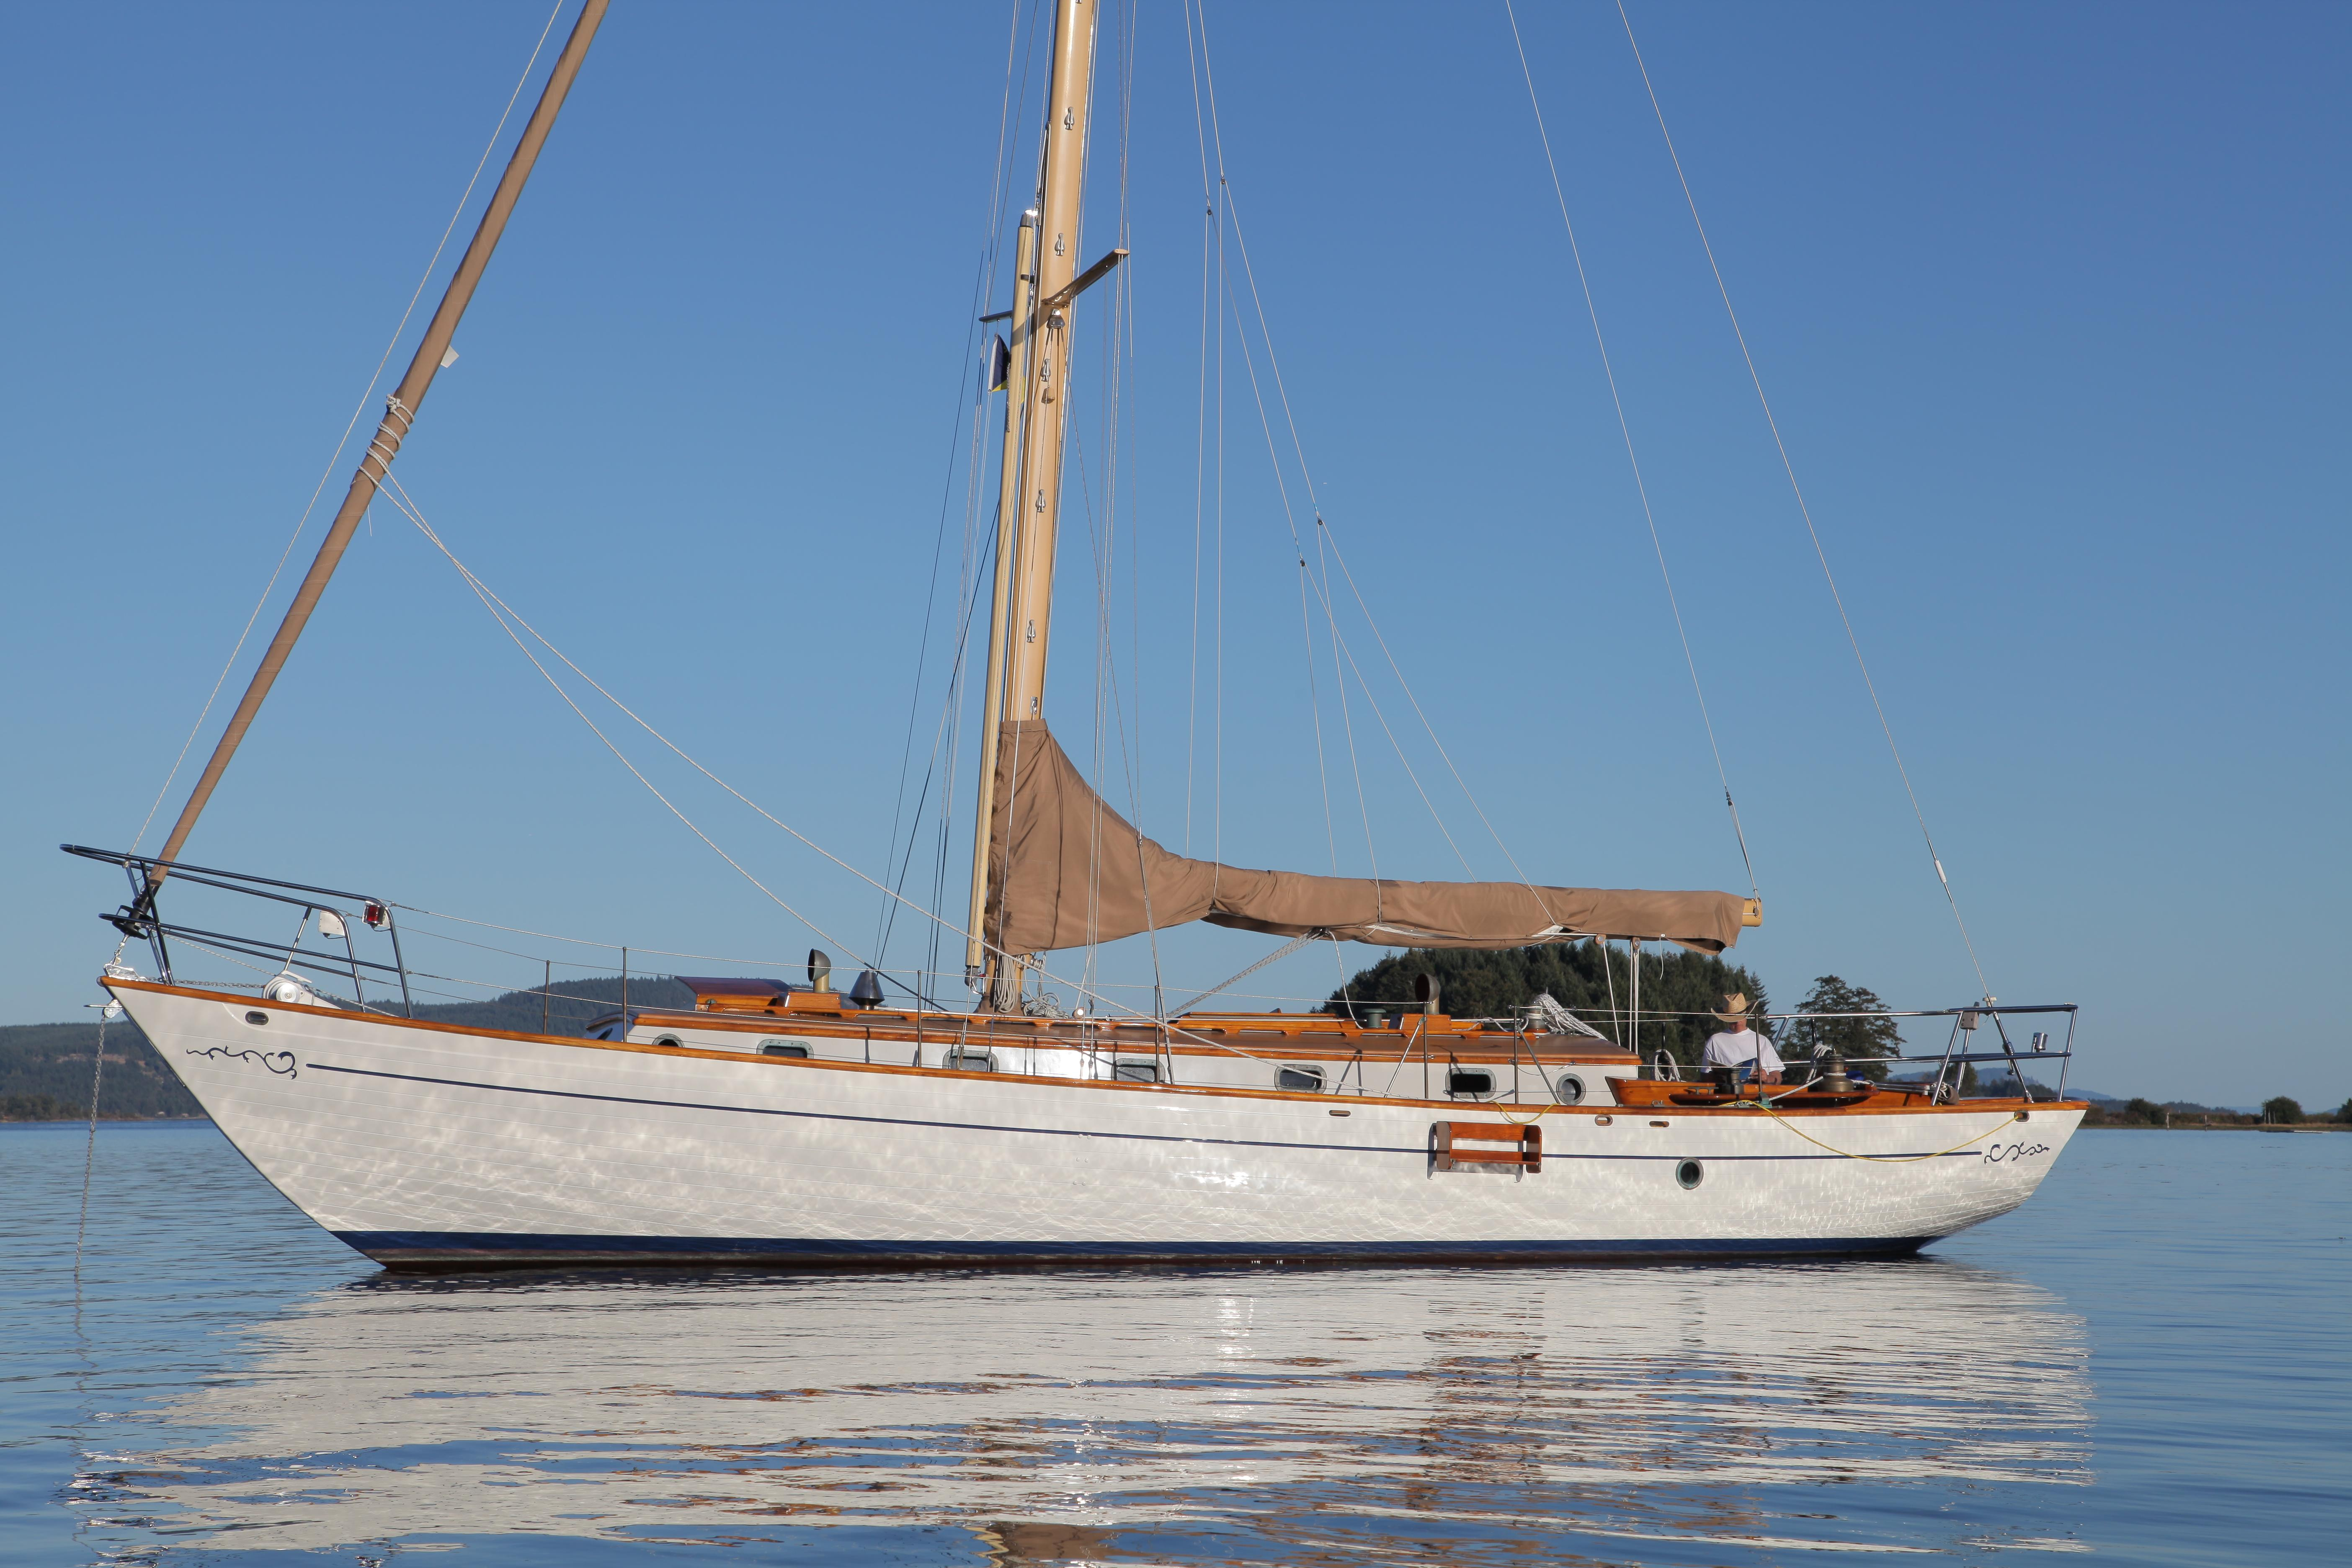 1972 Islander Yachts 55 Sail Boat For Sale Www